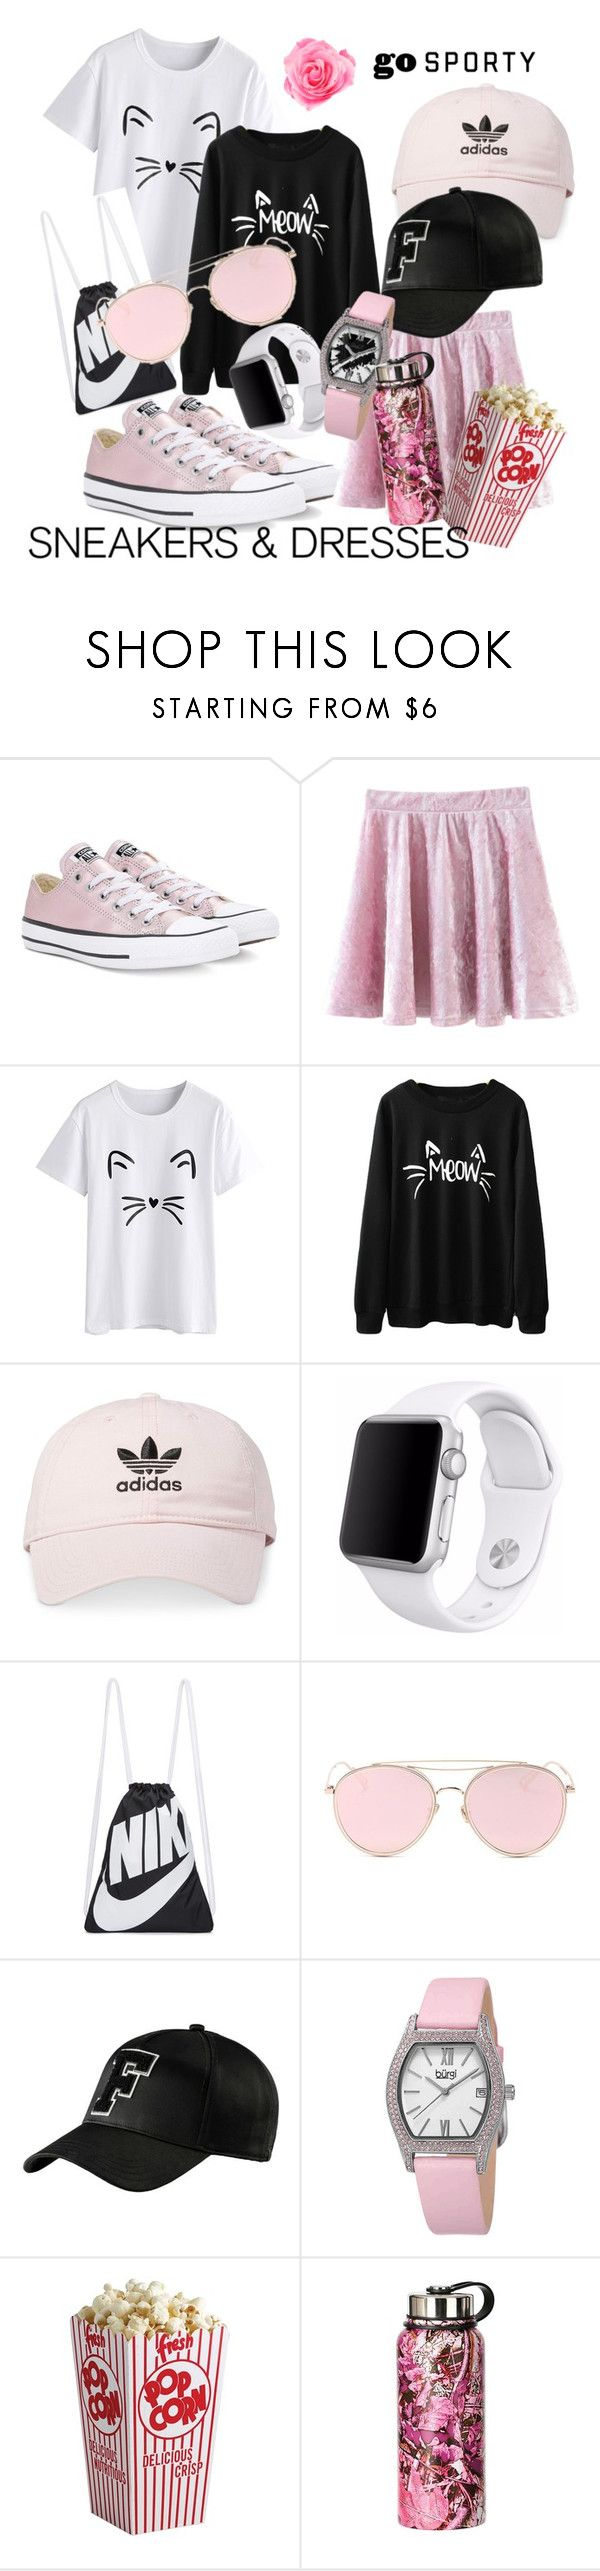 """Pastel tennis shoes )"" by taniaora ❤ liked on Polyvore featuring Converse, adidas, Apple, NIKE, LMNT, Puma and bürgi"